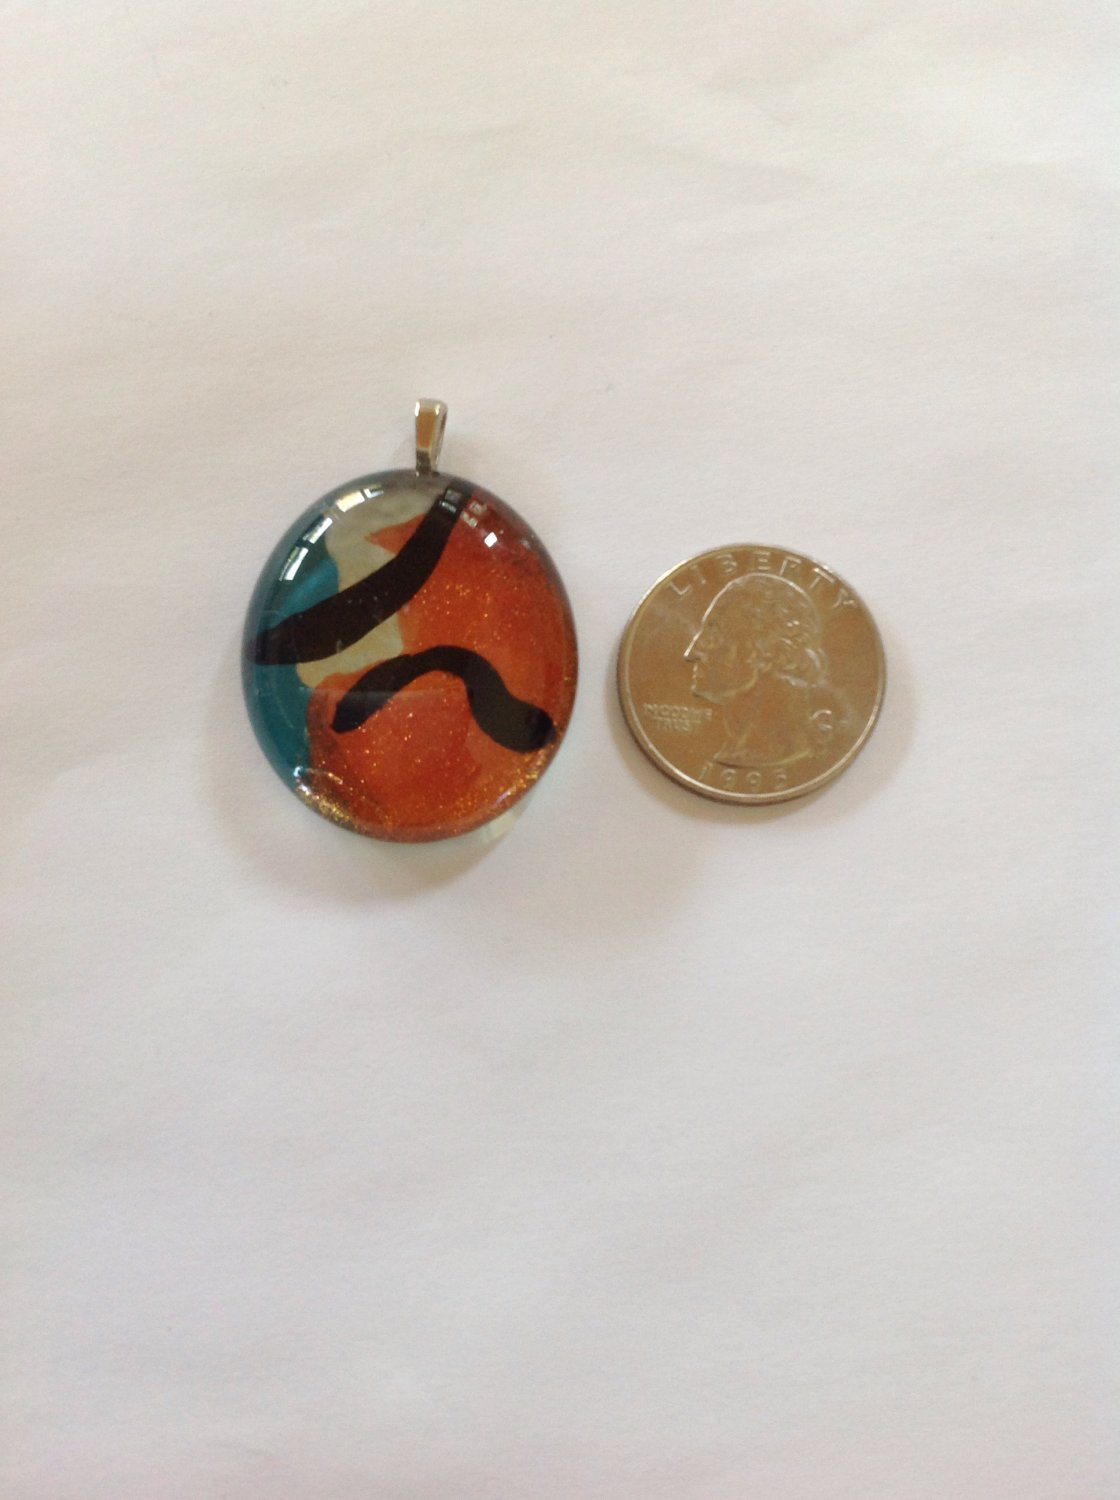 Metallic Copper, Silver, and Blue Hand Painted Glass Cabochon Pendant  Necklace